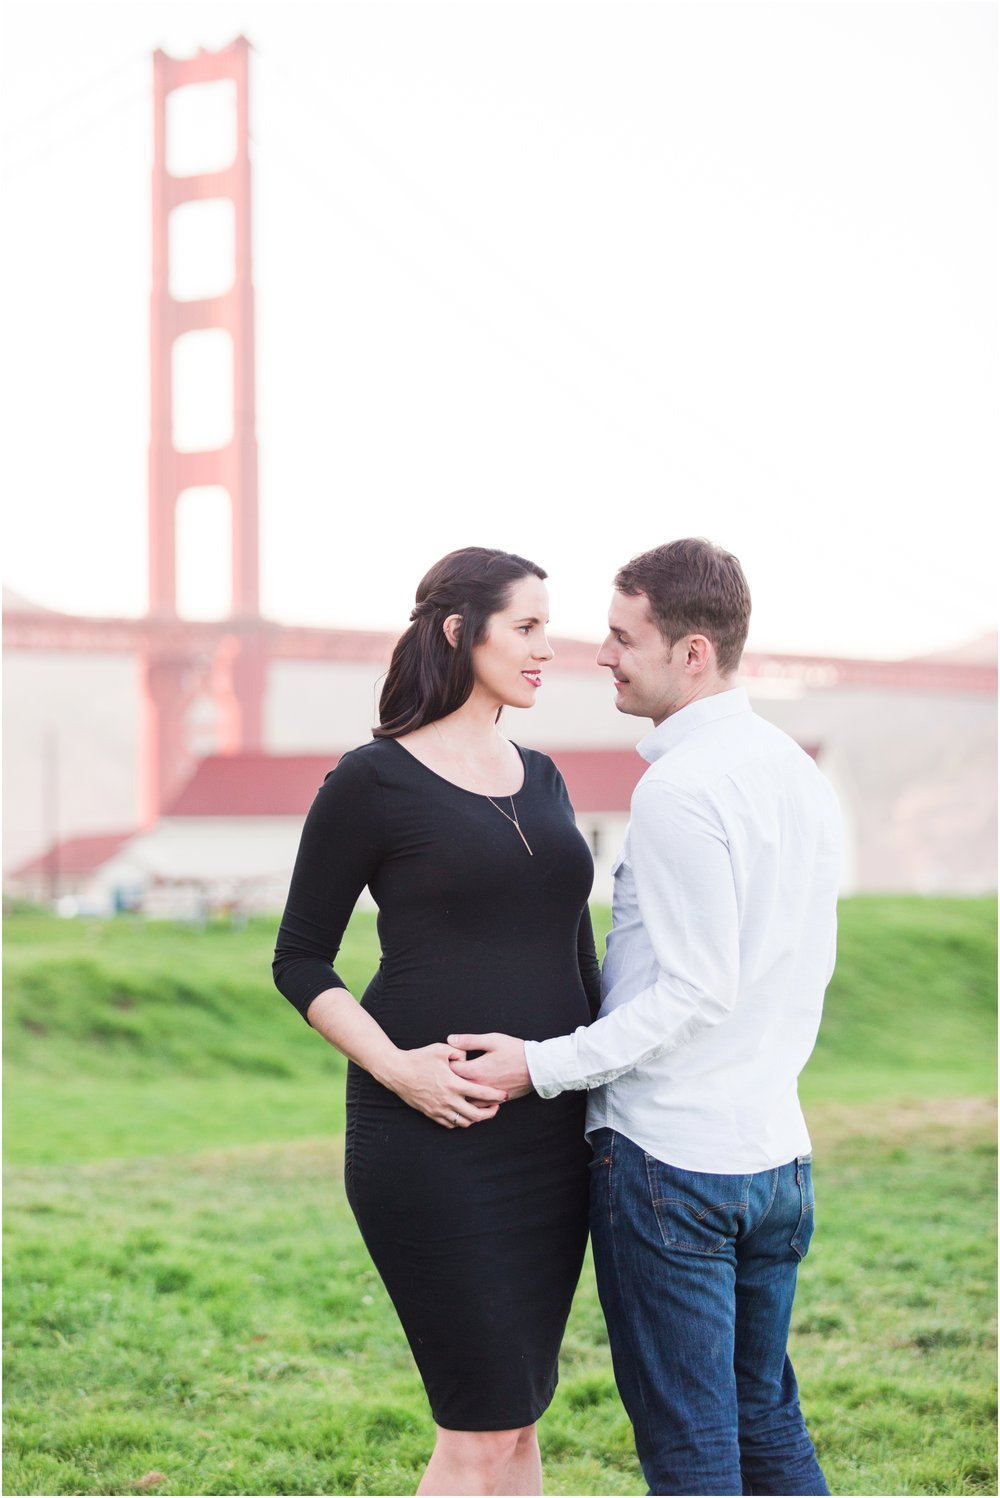 Crissy Field San Francisco maternity pictures by Briana Calderon Photography_0289.jpg